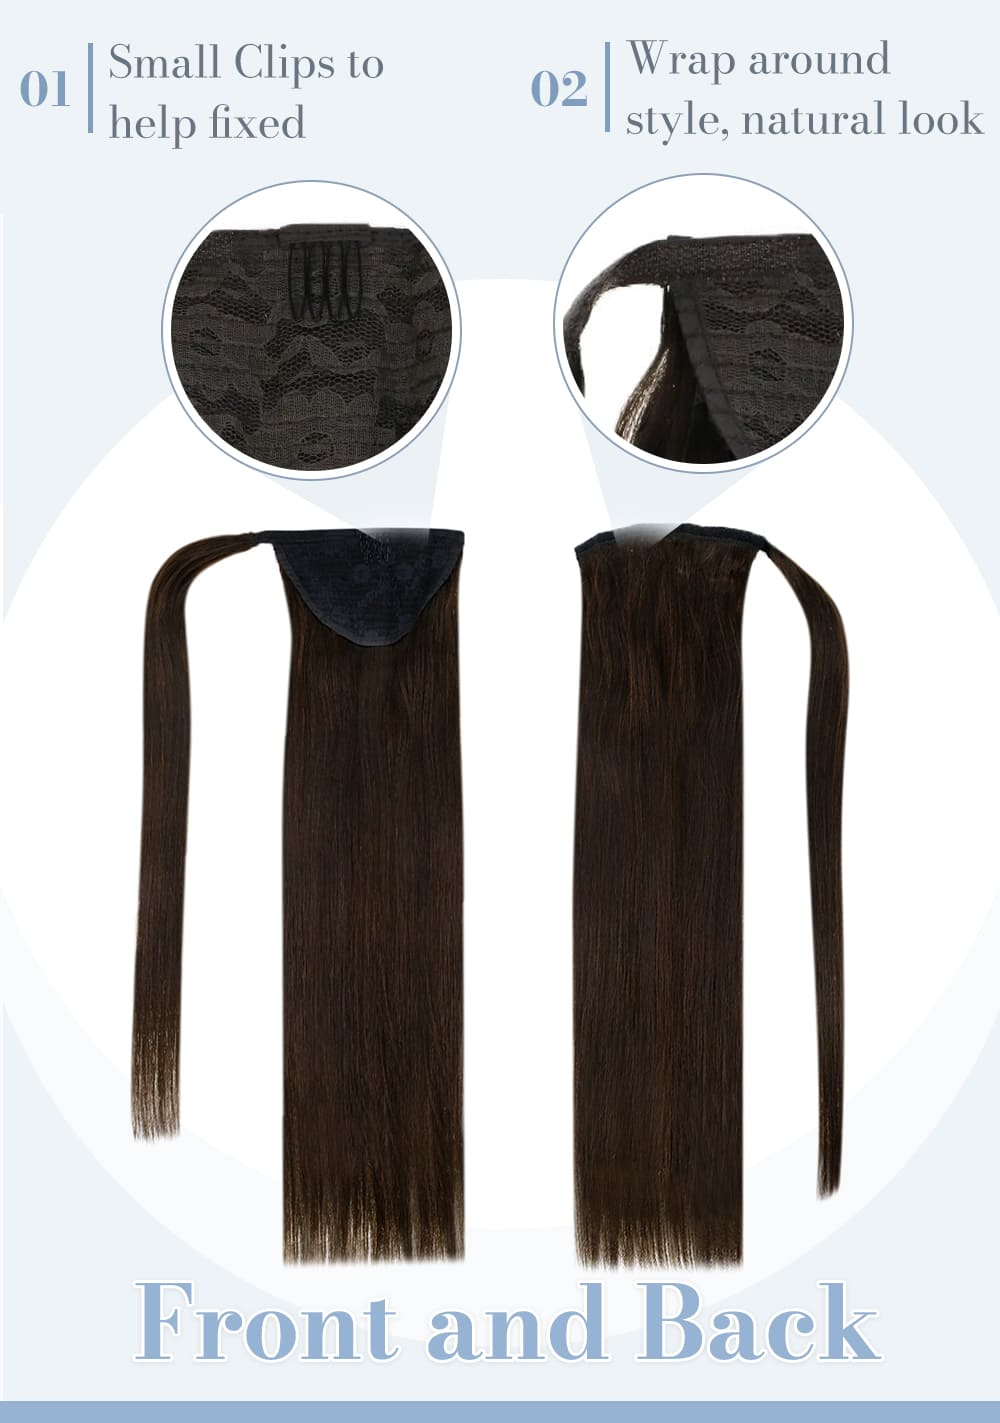 2 laavoo solid color ponytail human hair soft and natural human hair extensions can be dyed and straighten bled well with your hair extension